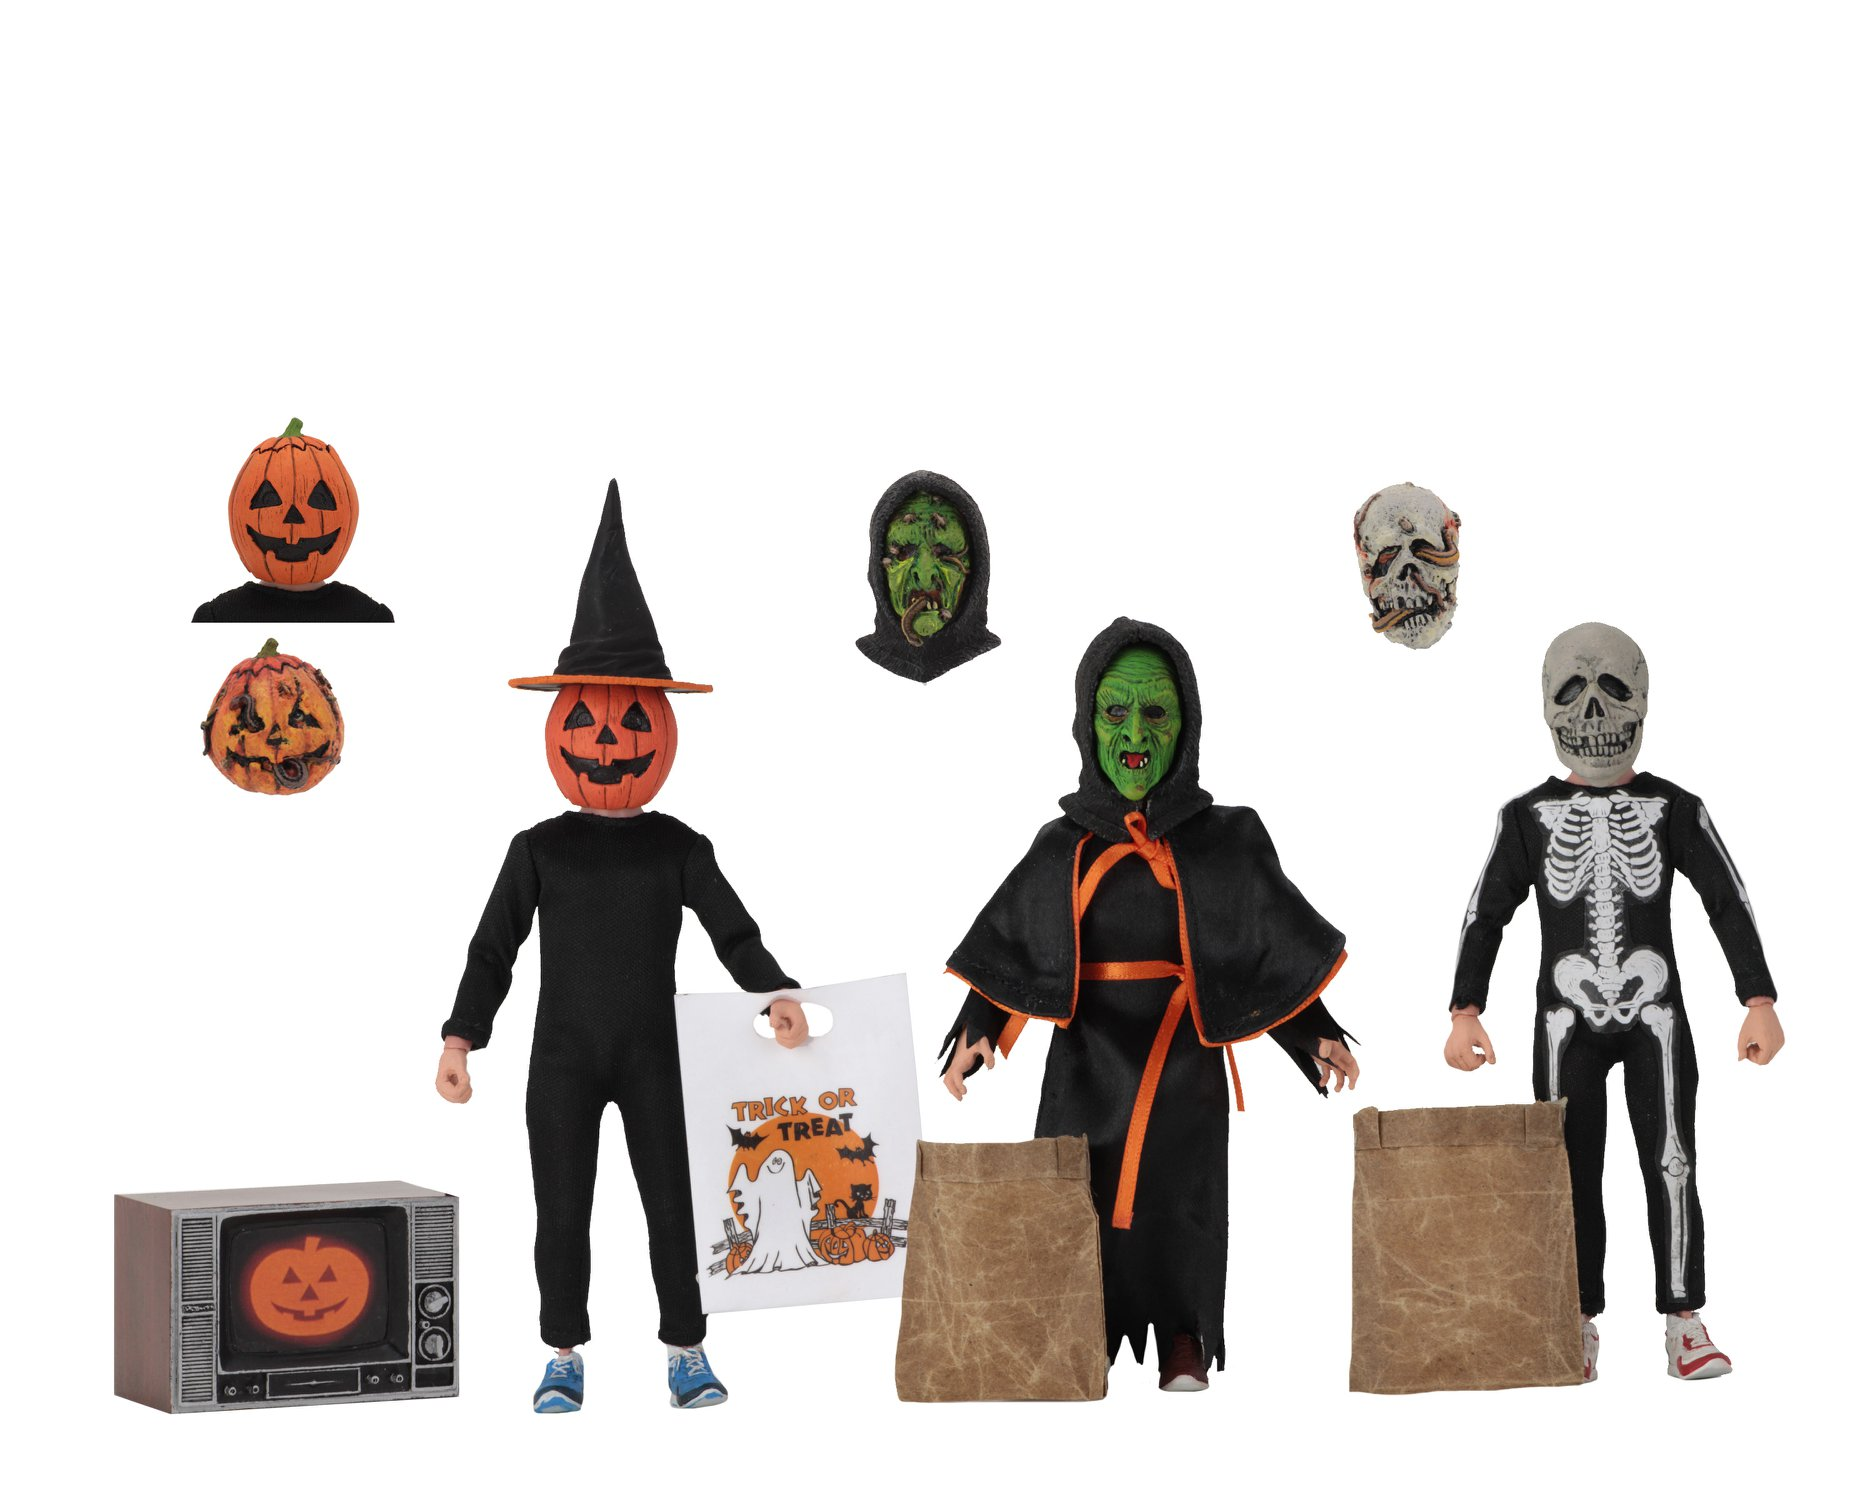 NECA Toys Halloween 3 – Season Of The Witch – 8″ Scale Clothed Figure Set